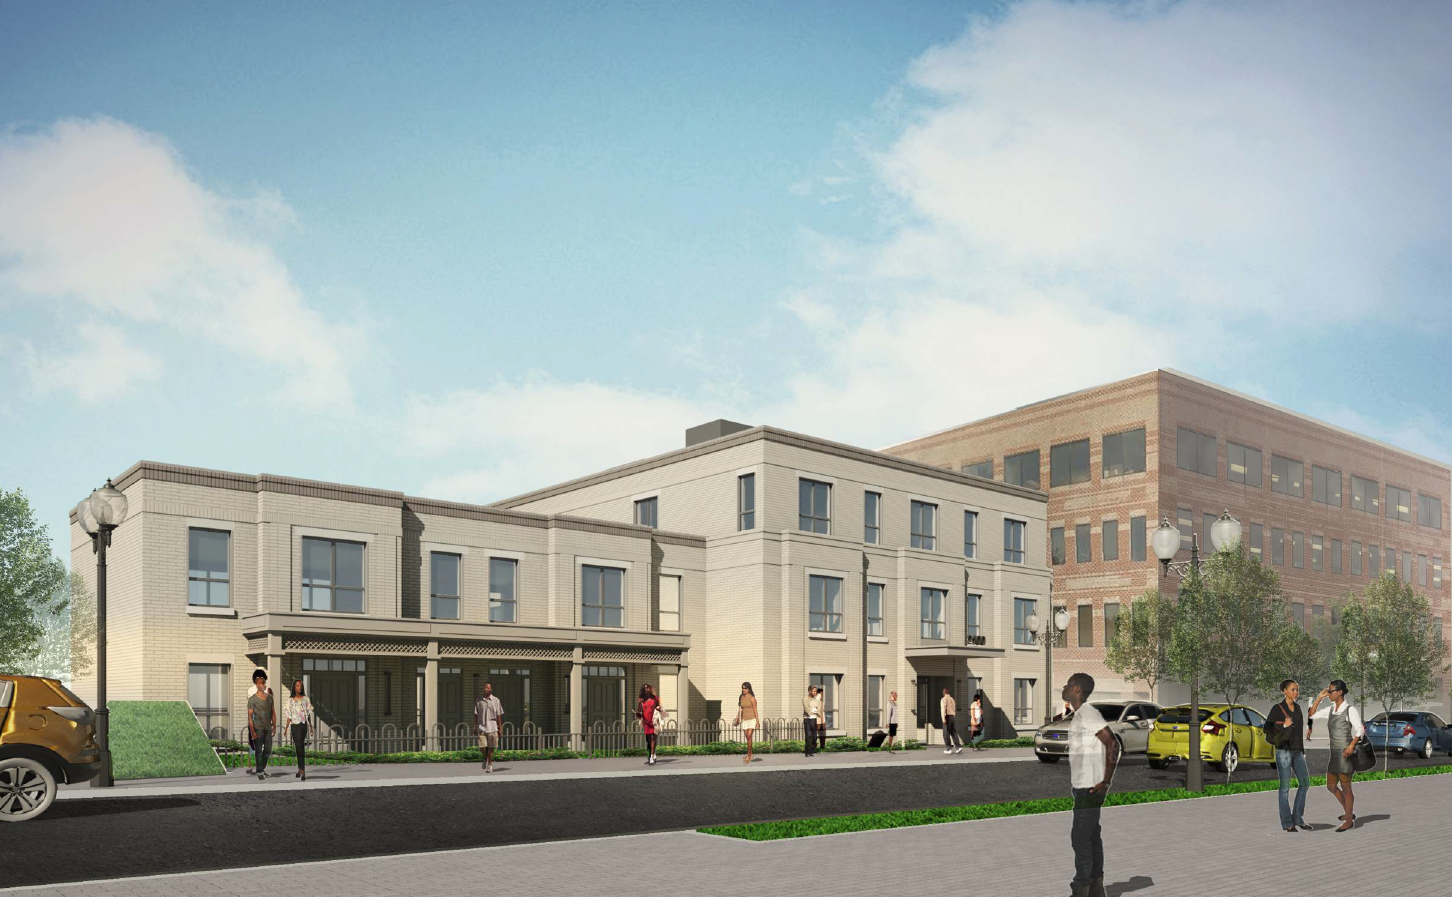 2100 Martin Luther King Jr. Ave., SE: Final rendering after HAPS comments, 2018